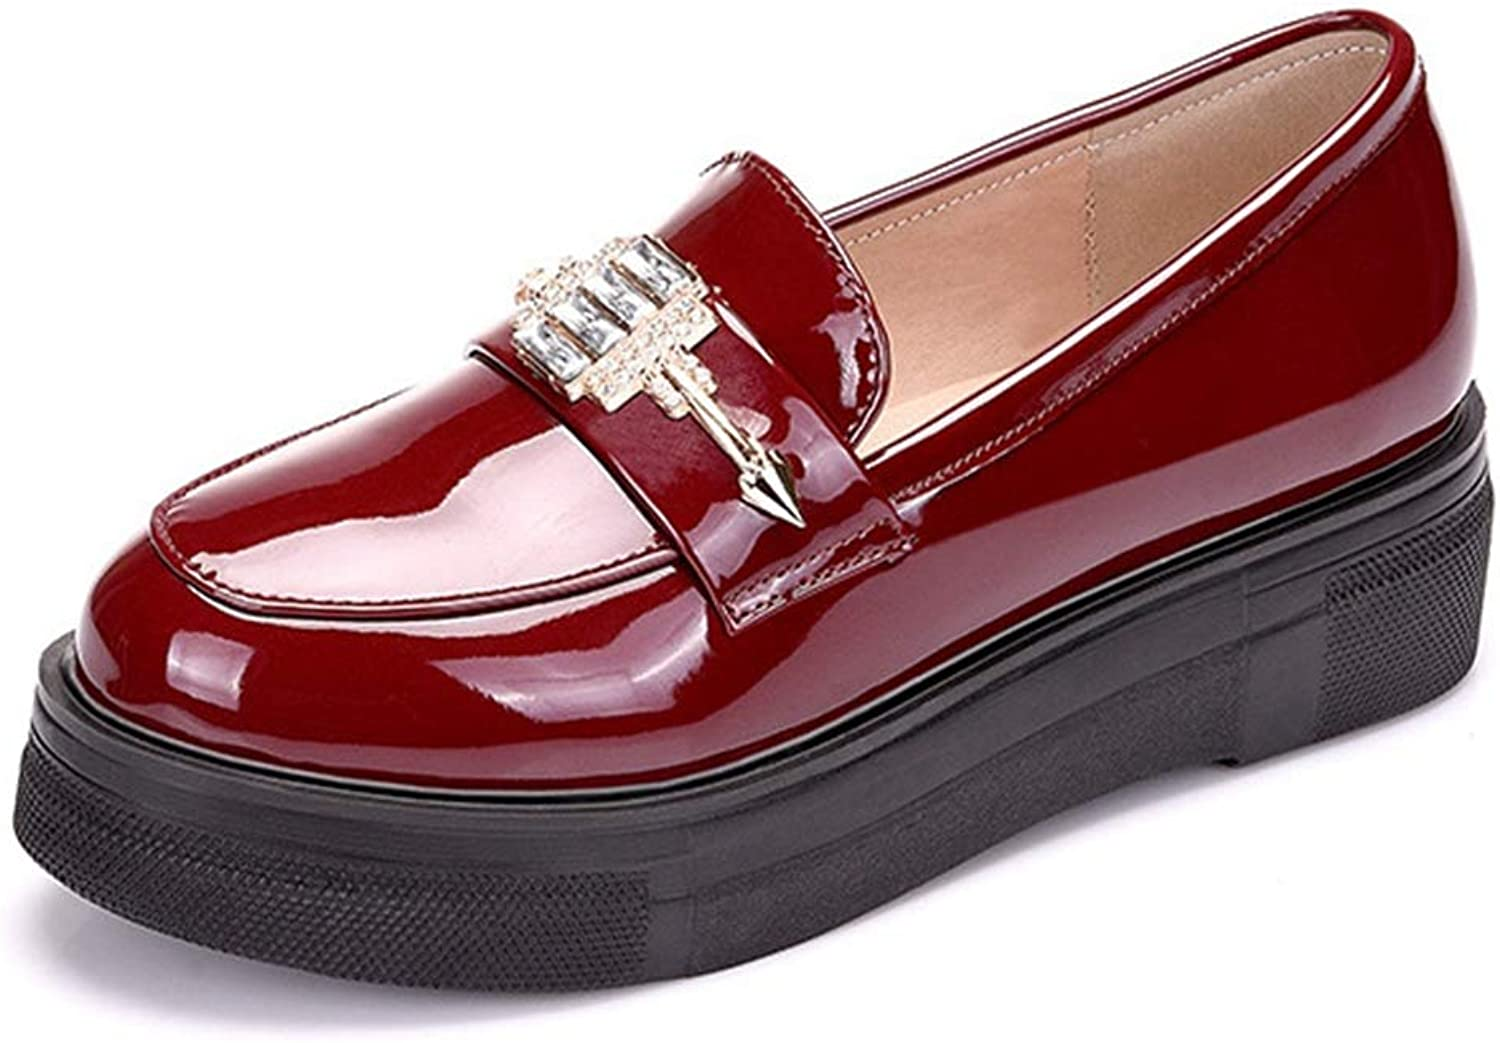 CYBLING Women's Classic Penny Loafer Leather Comfort Slip On Oxfords Low Heel Flat shoes